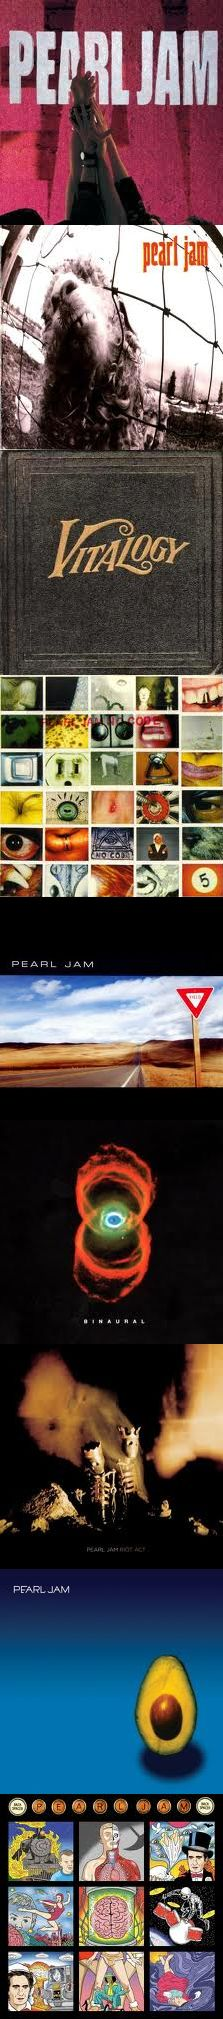 EPIC ALBUM, life changing! Pearl Jam 10